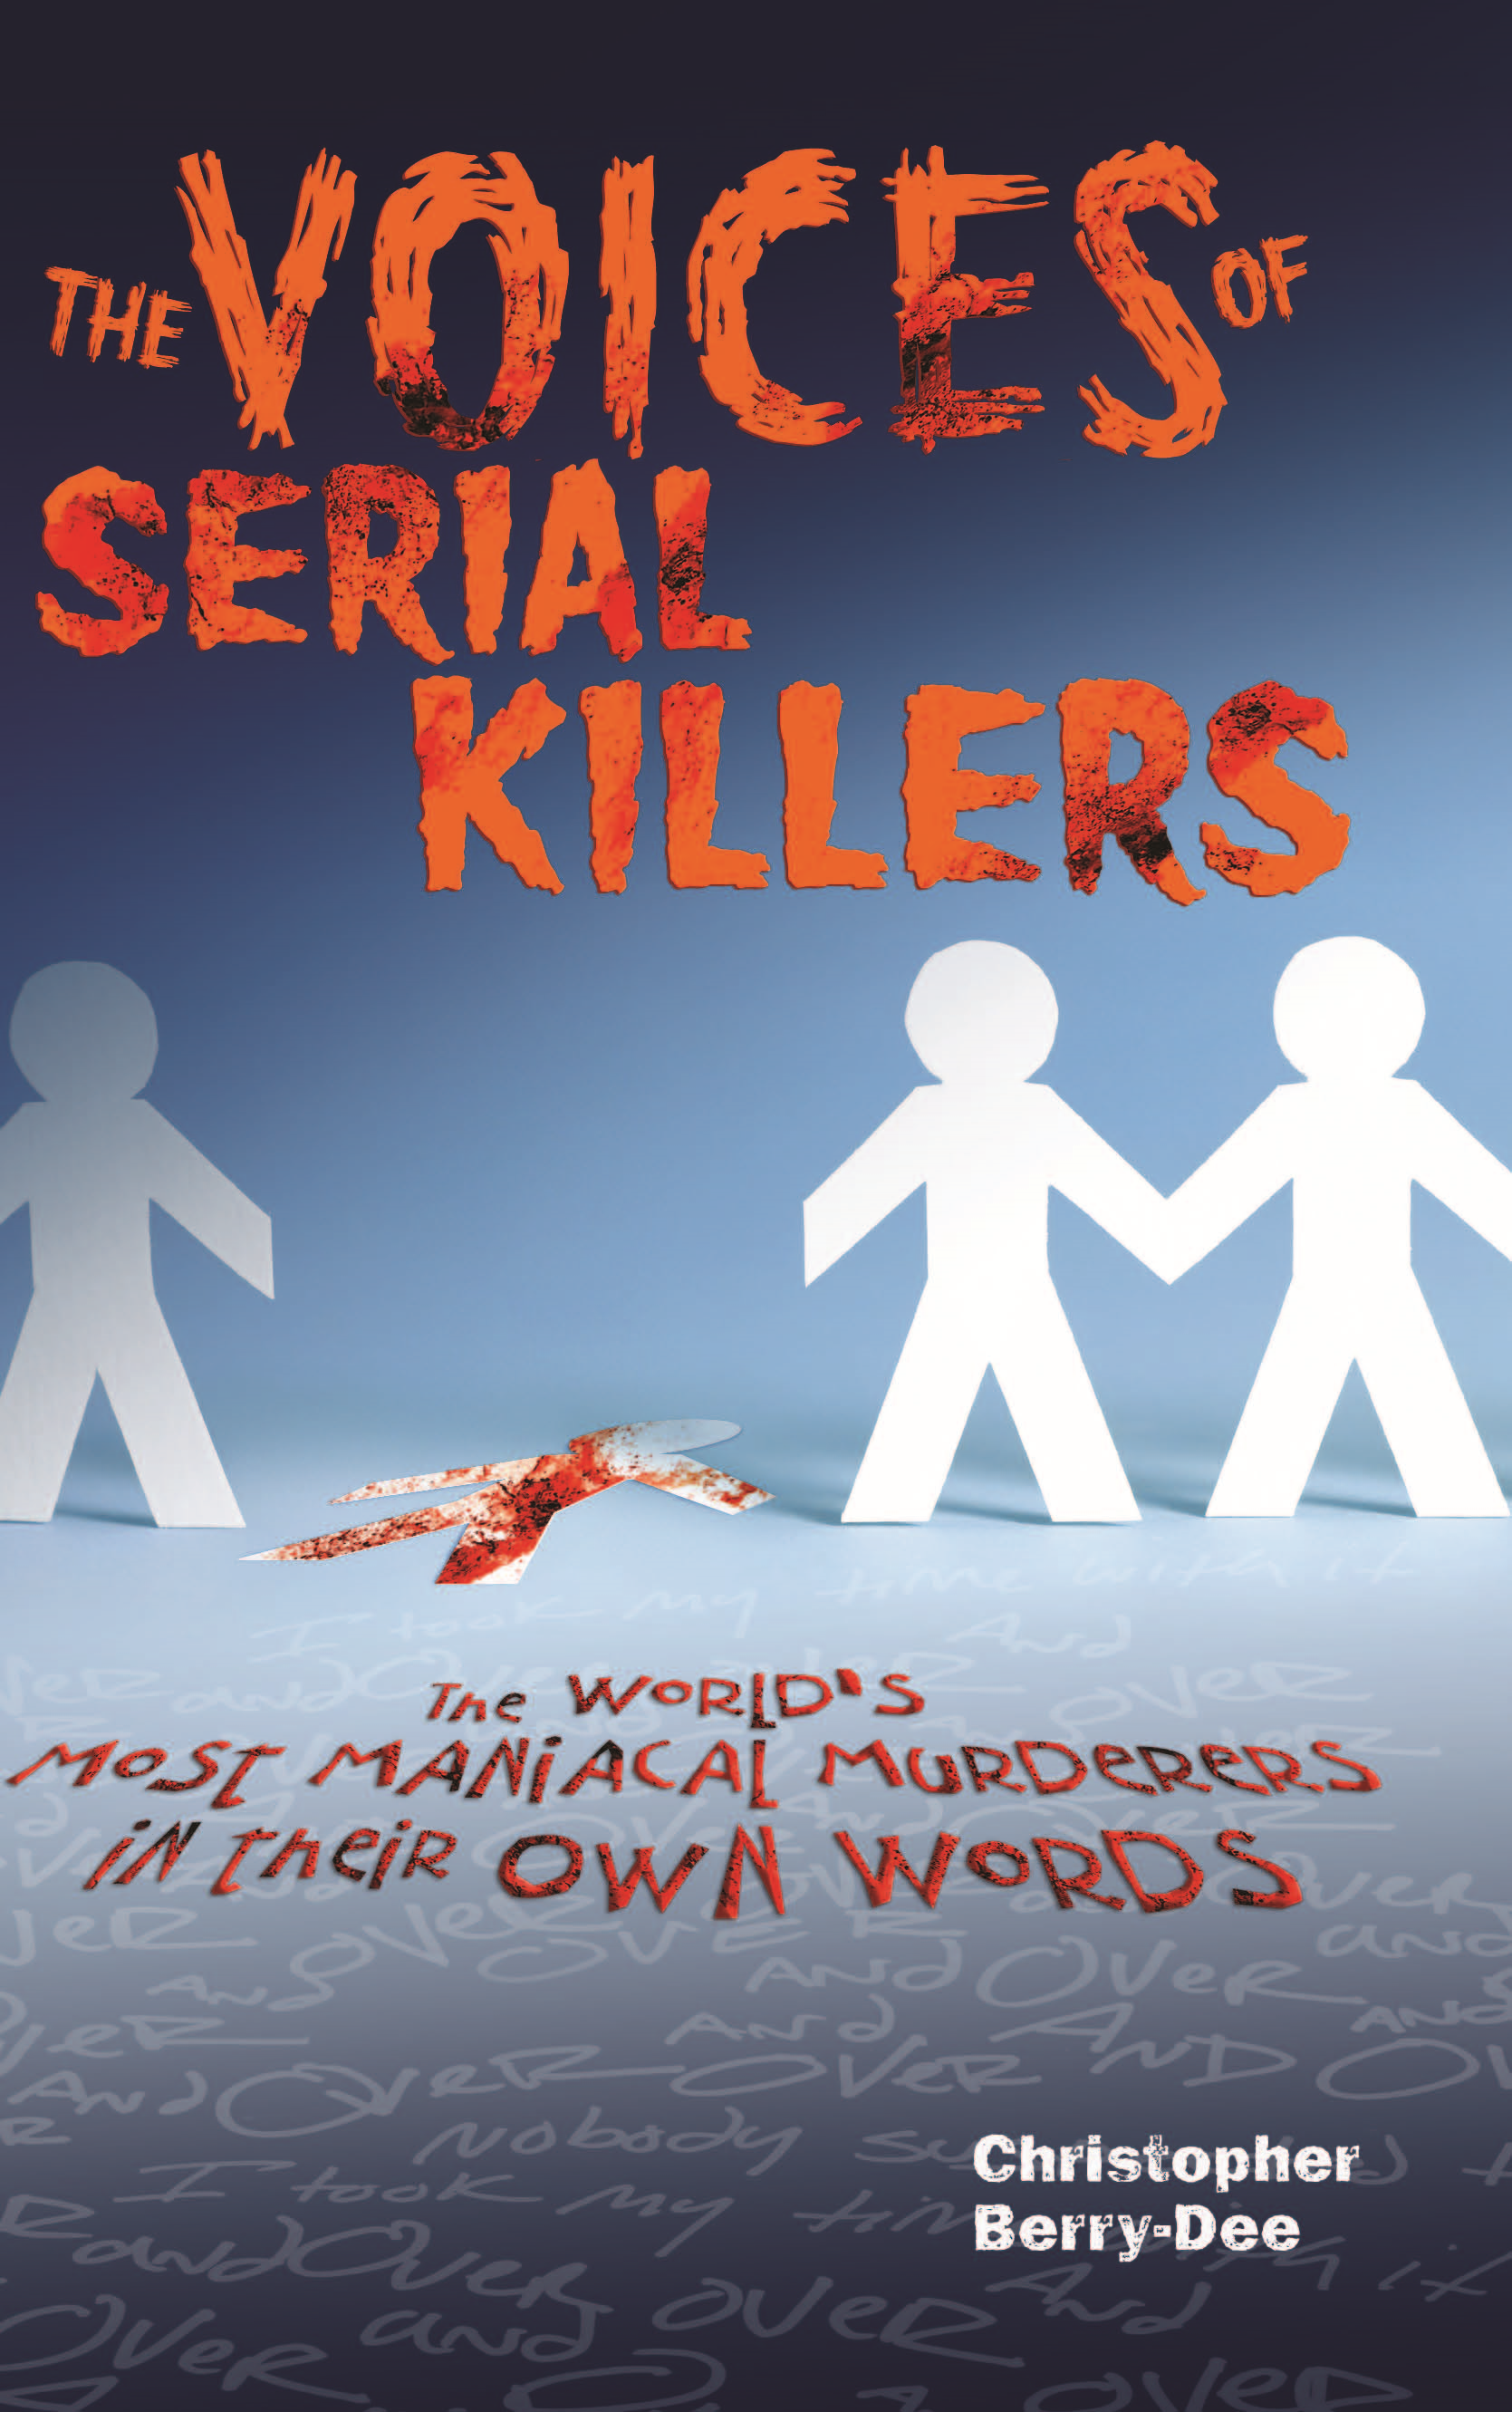 The Voices of Serial Killers By: Christopher Berry-Dee,Victoria Redstall